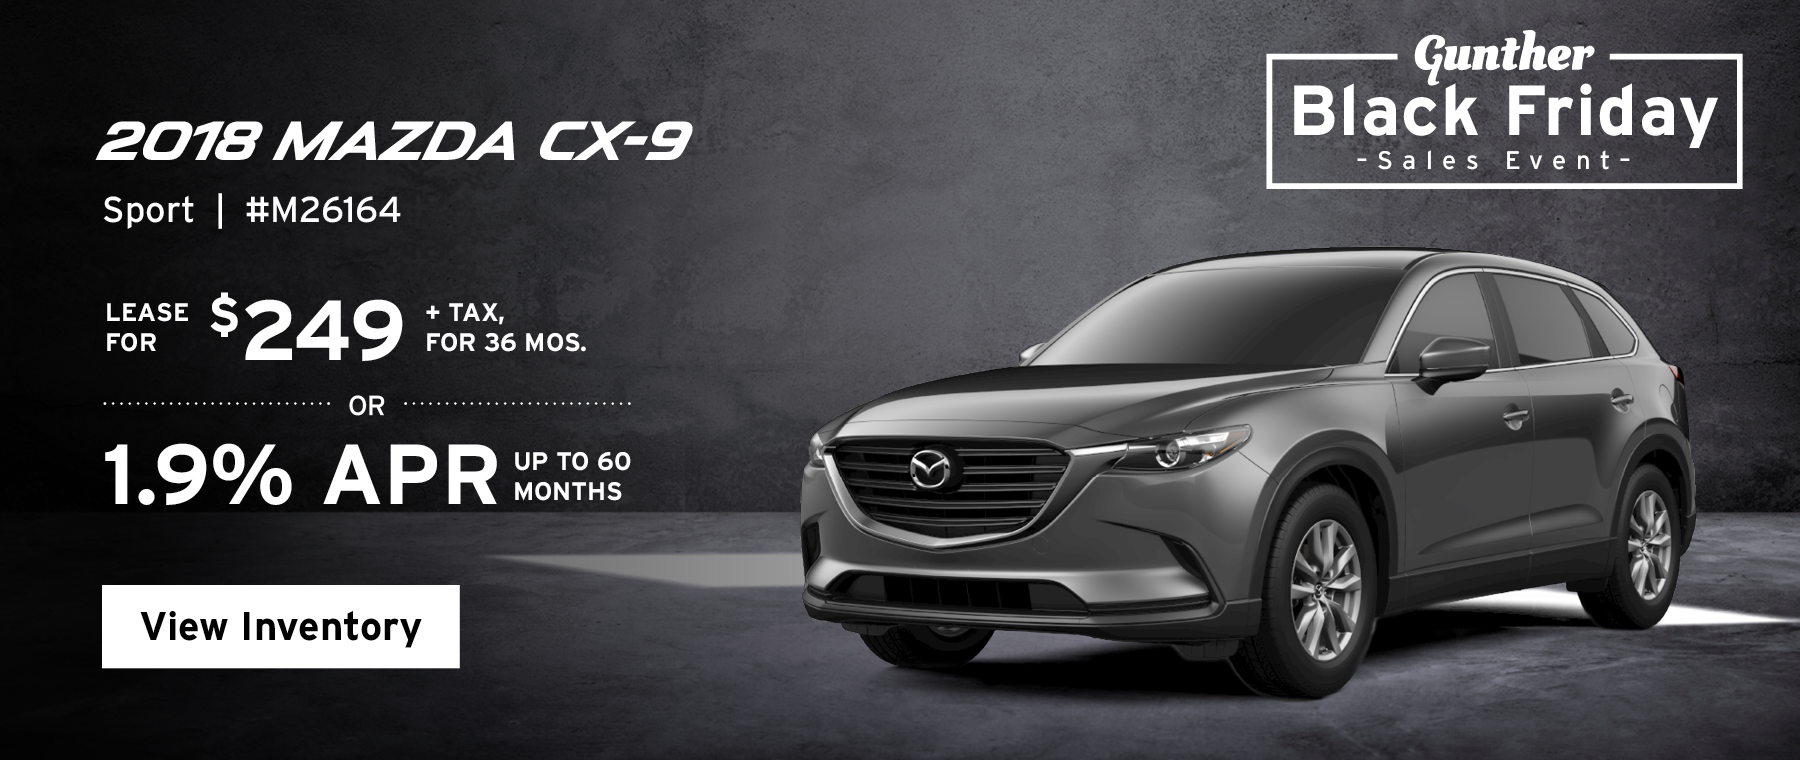 Lease the 2018 Mazda CX-9 Sport for $249, plus tax for 36 months, or 1.9% APR up to 60 months.